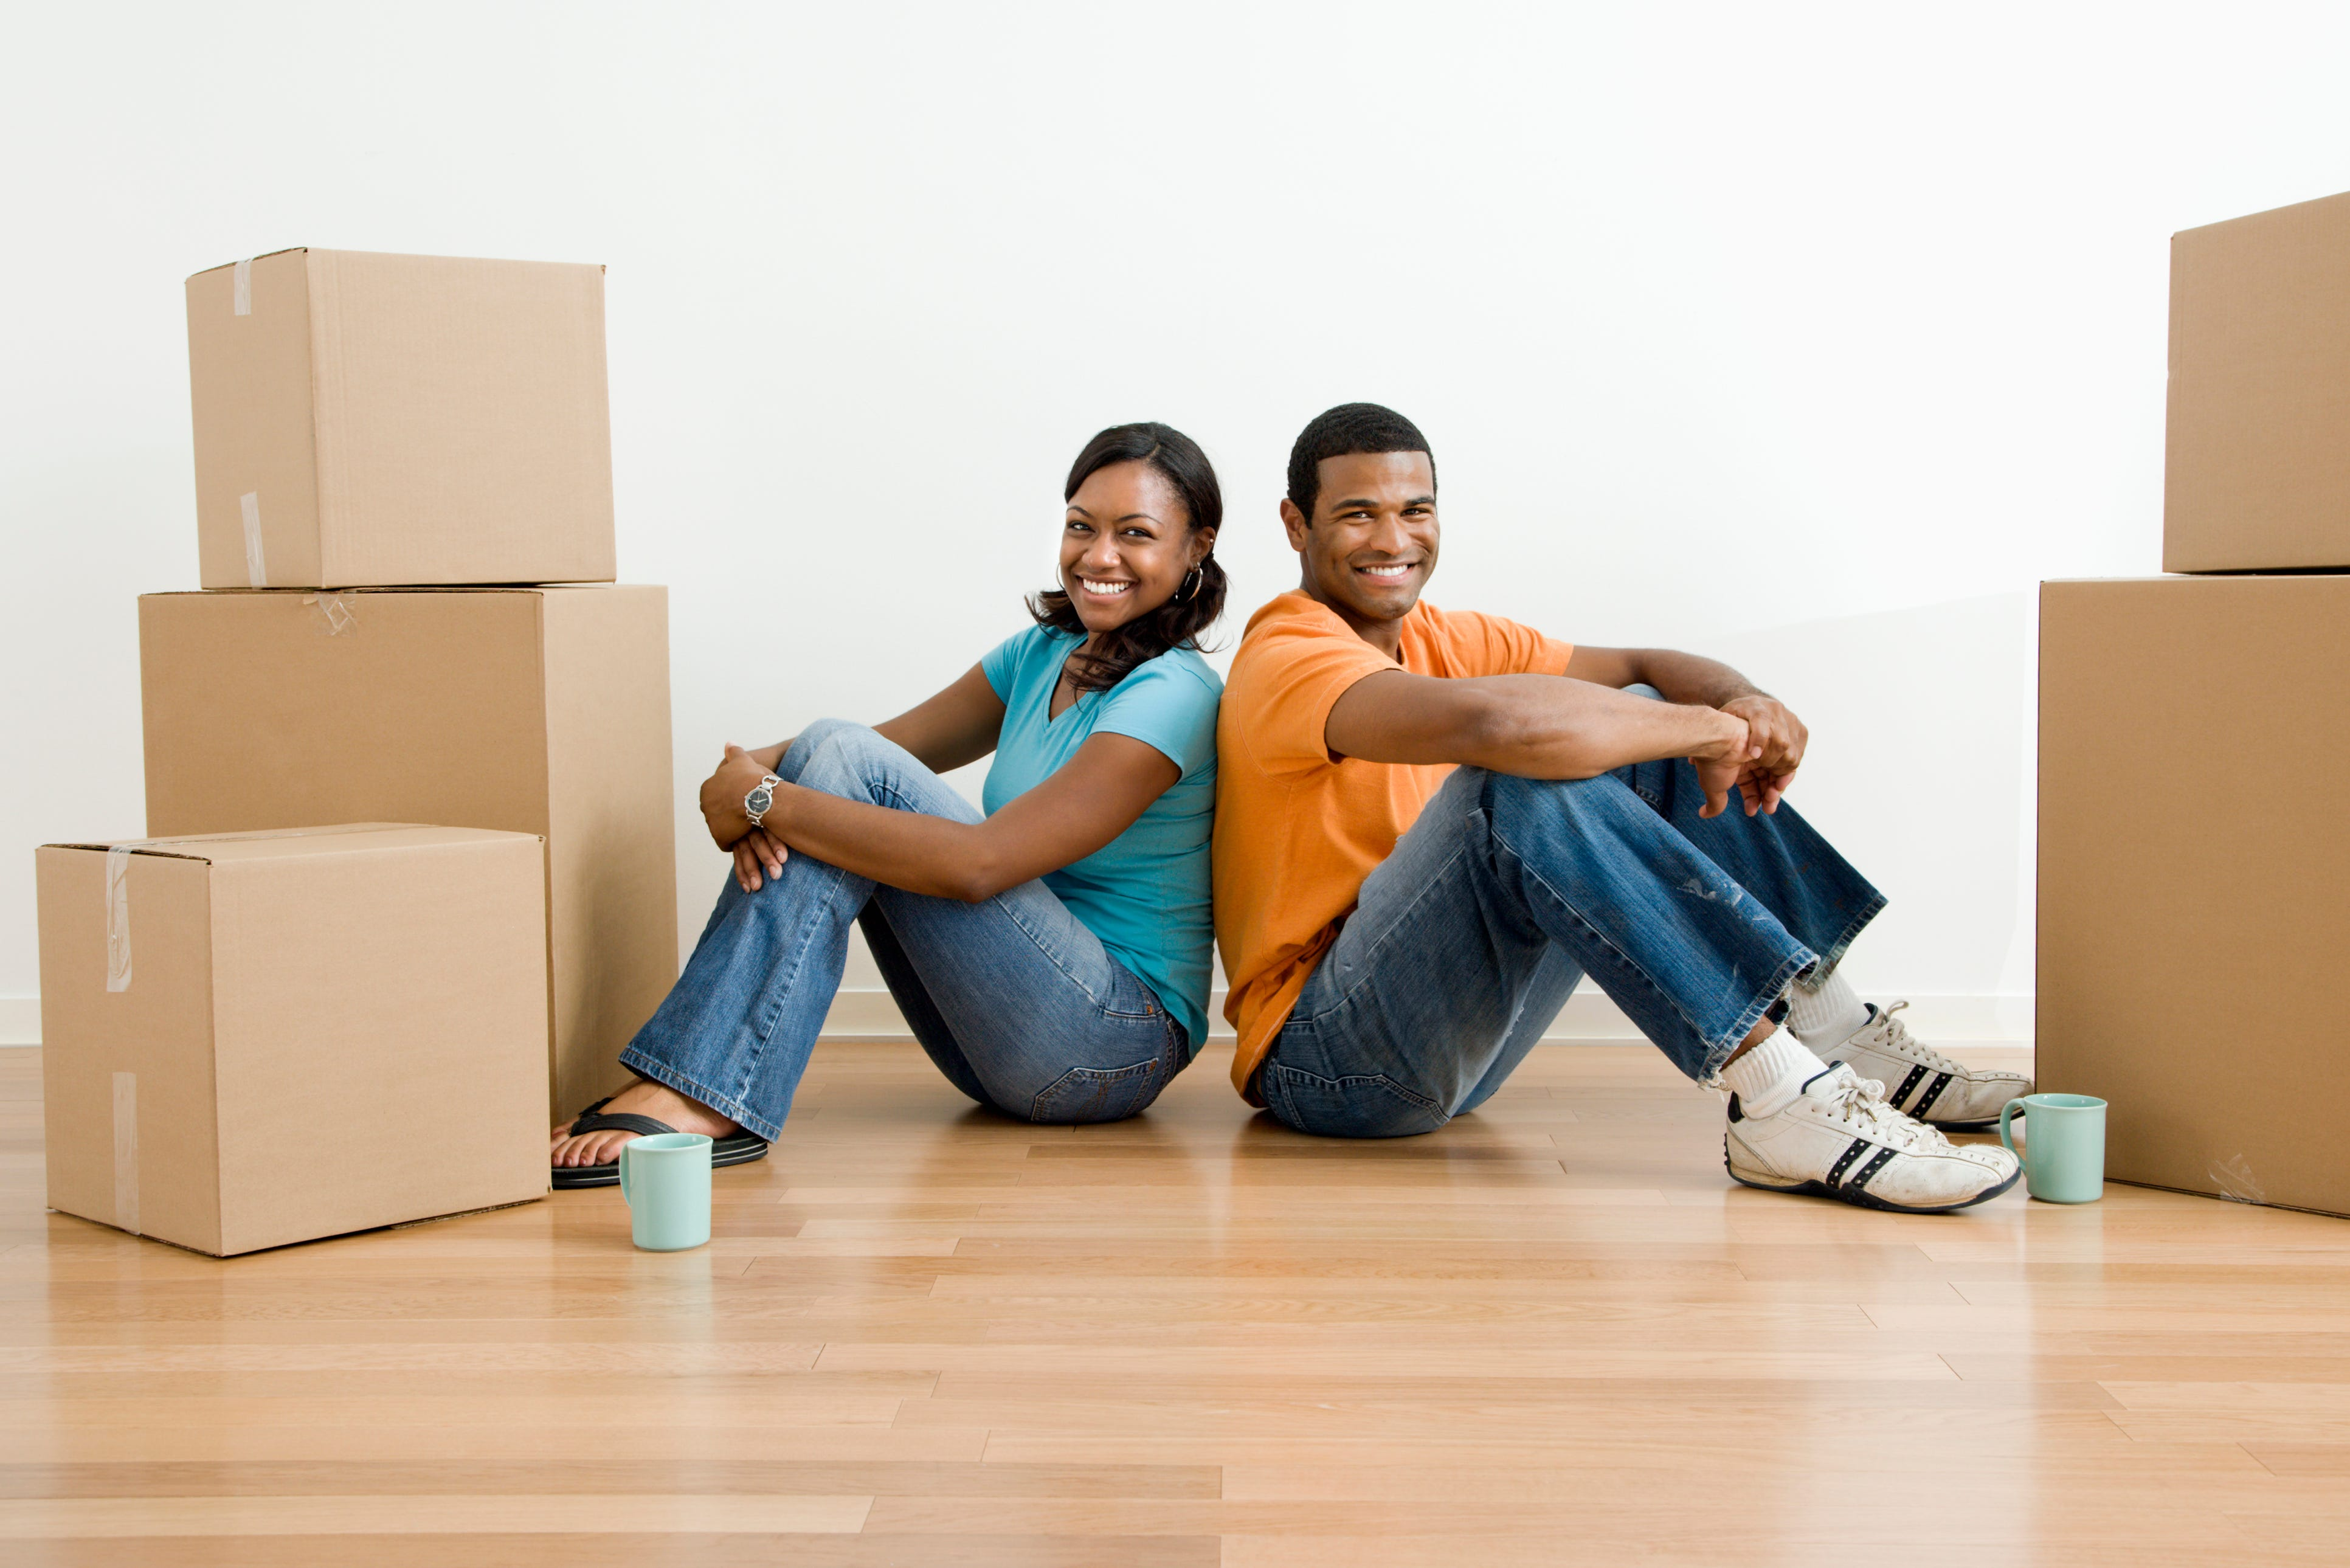 Forget prenups: Unmarried couples today need 'no nups'